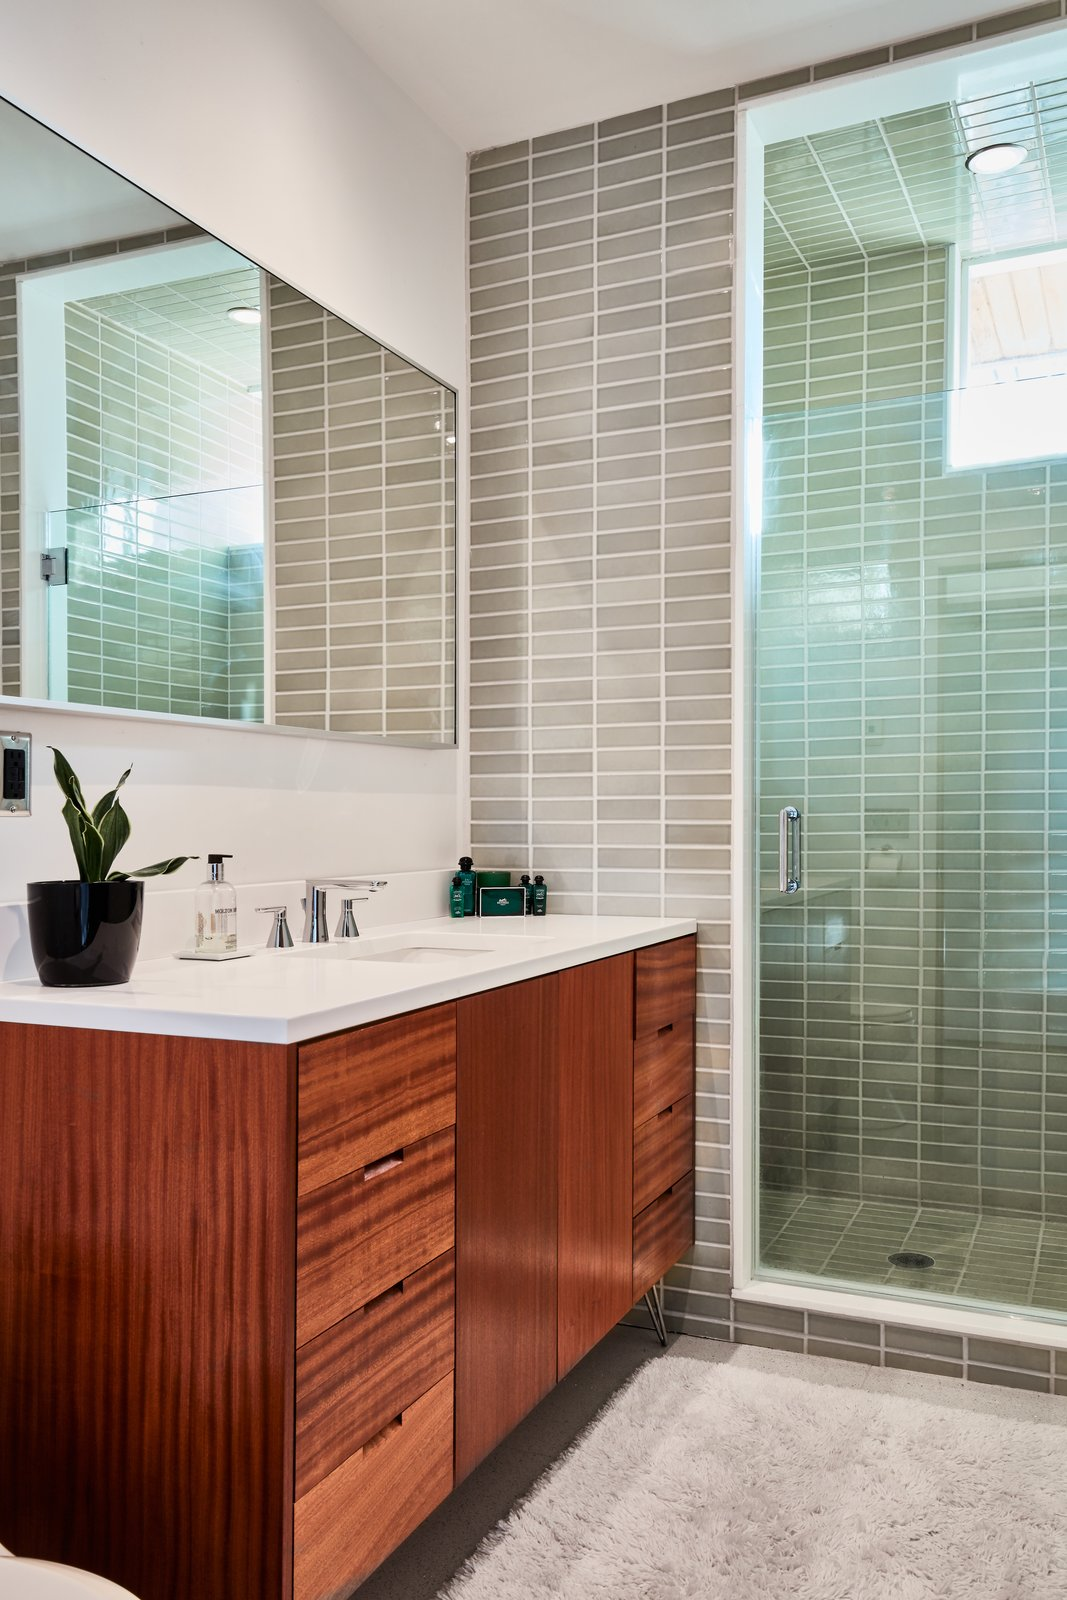 Bath Room, Undermount Sink, and Enclosed Shower  Photo 12 of 13 in The Stunningly Restored Hassrick Residence by Richard Neutra Hits the Market at $2.2M